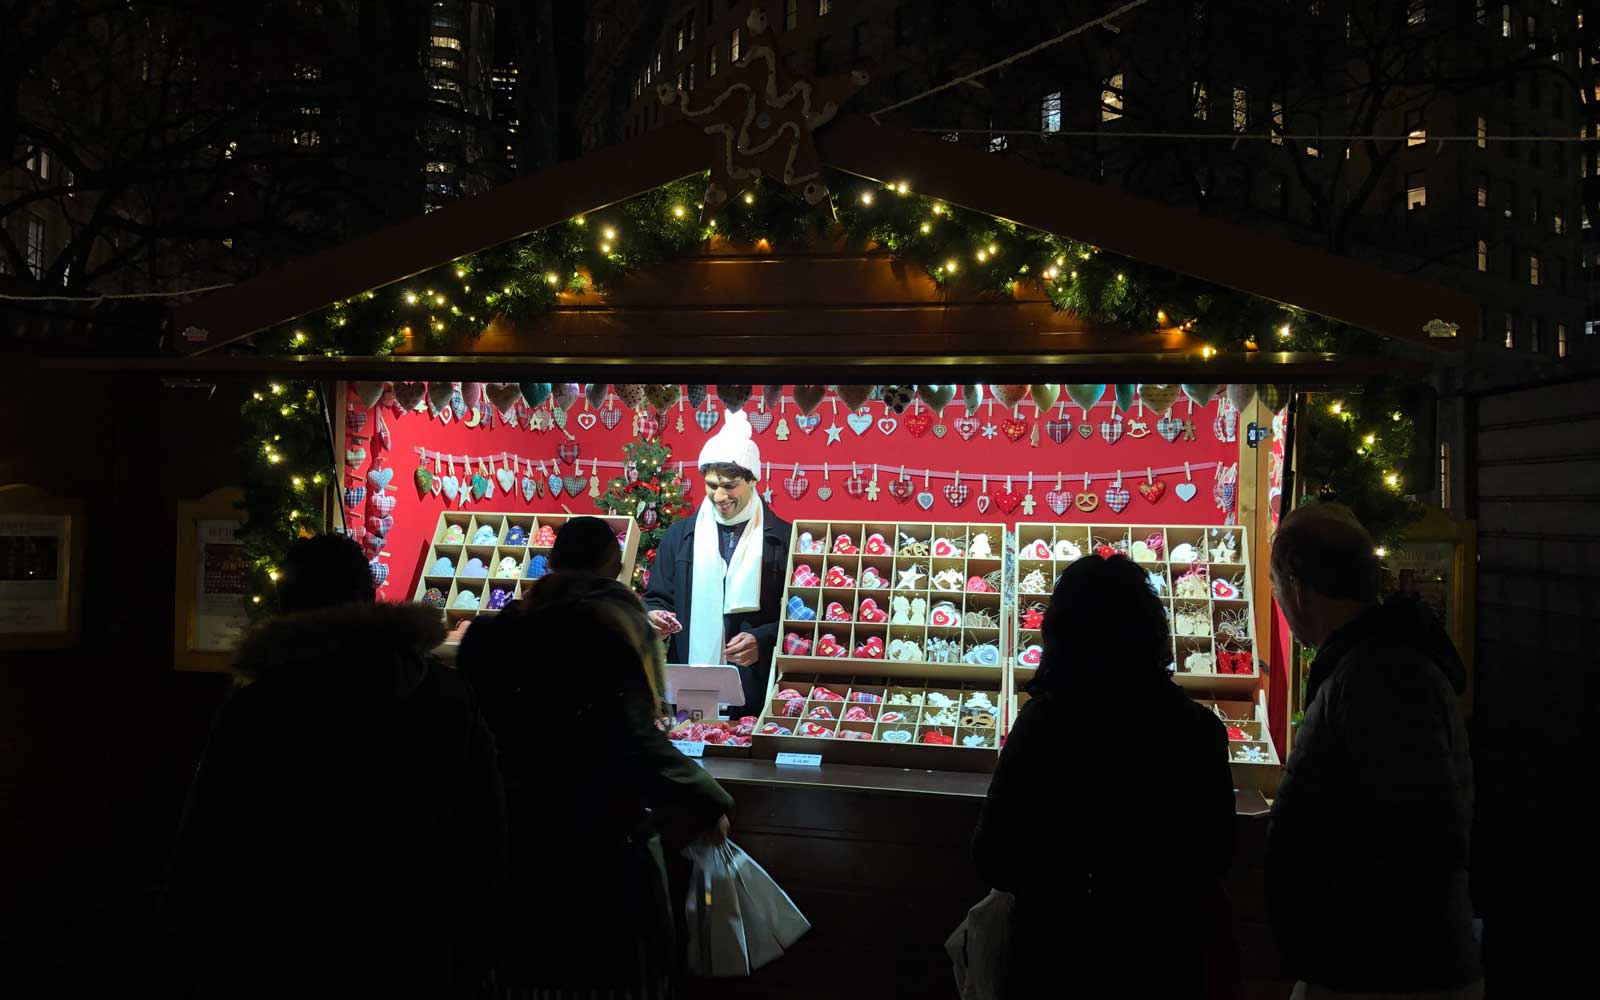 This traditional French Christmas market is the most festive spot in NYC this year